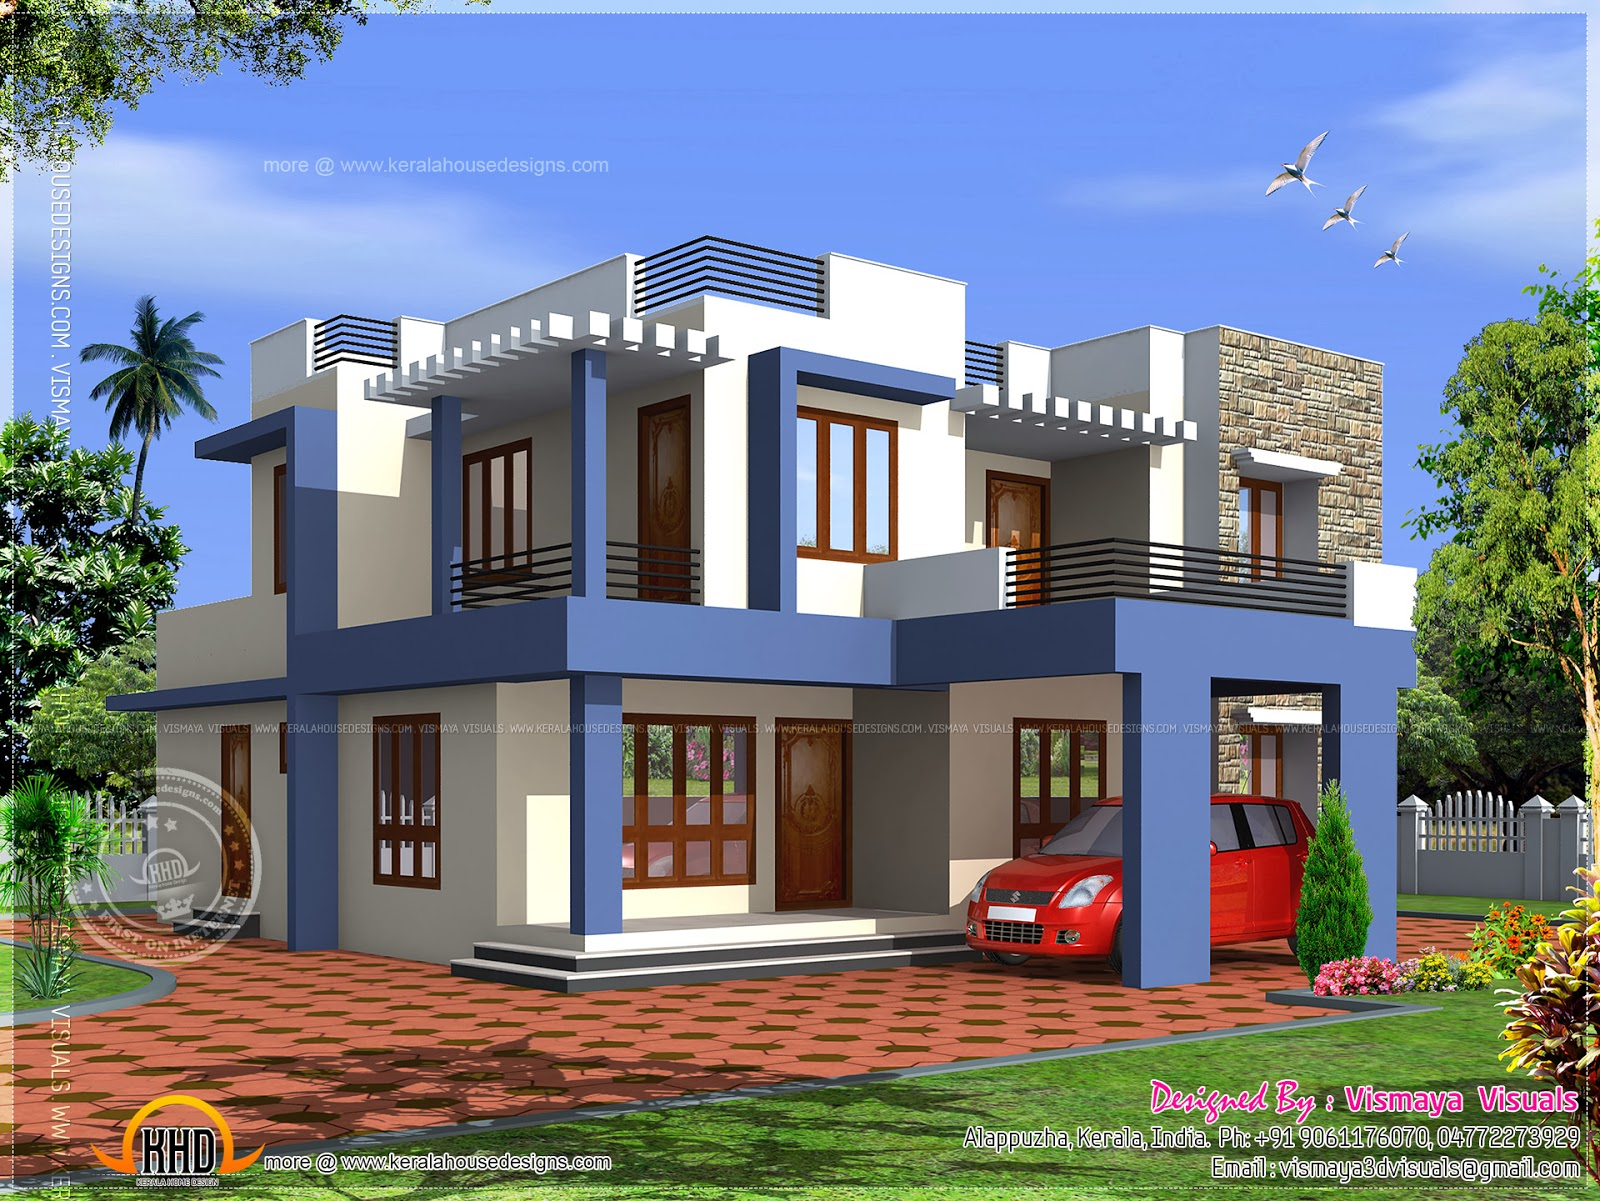 Box type 4 bedroom villa kerala home design and floor plans for Different types of house plans